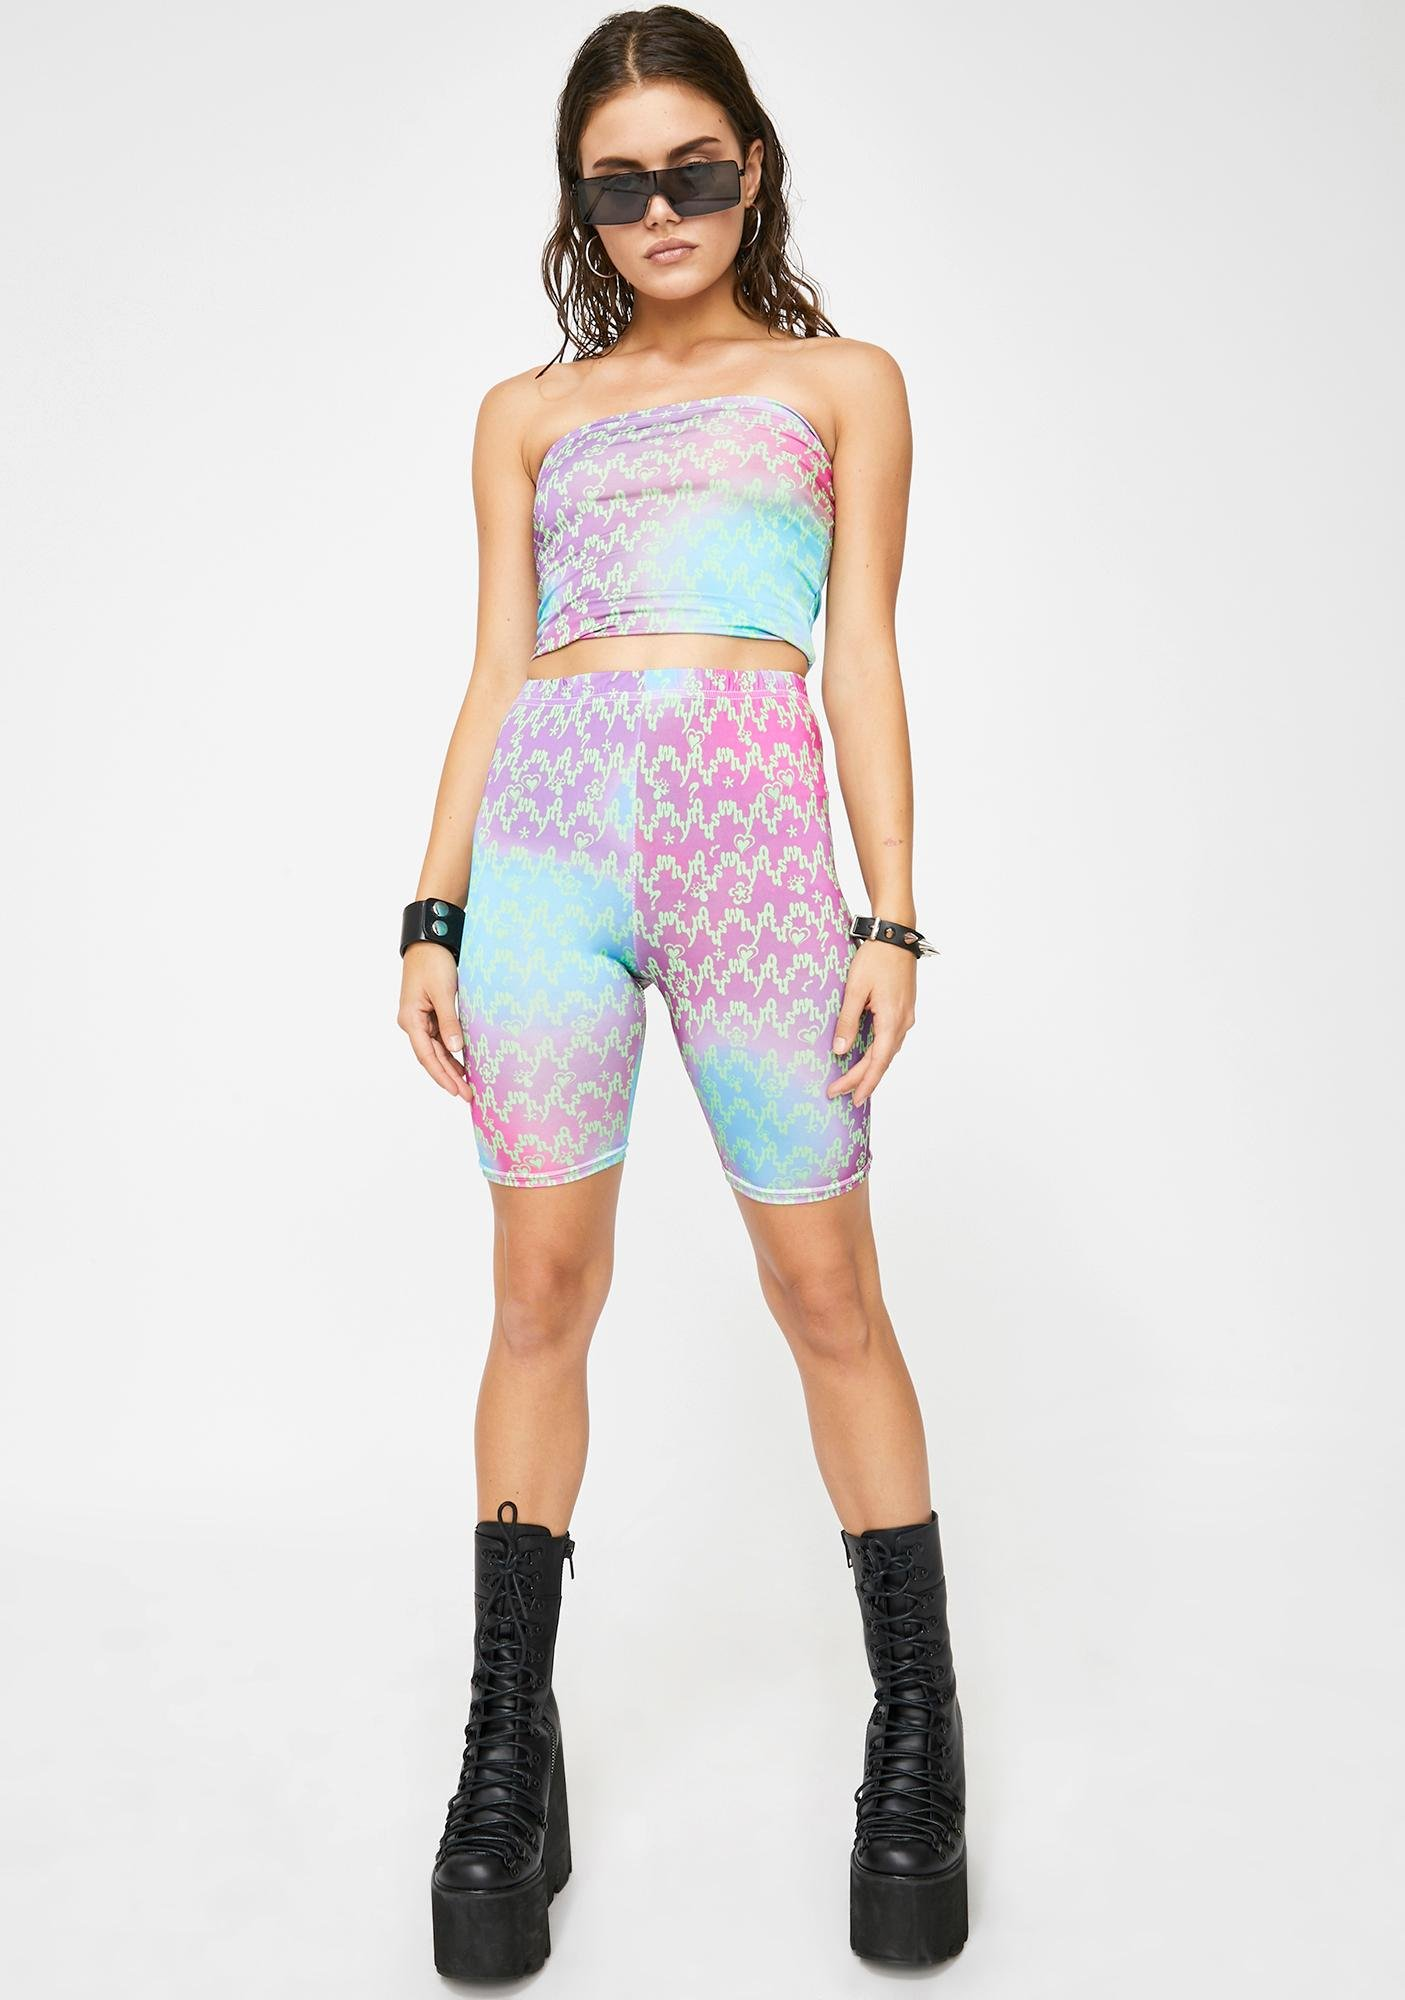 Why Not Us Shooting Star Biker Shorts